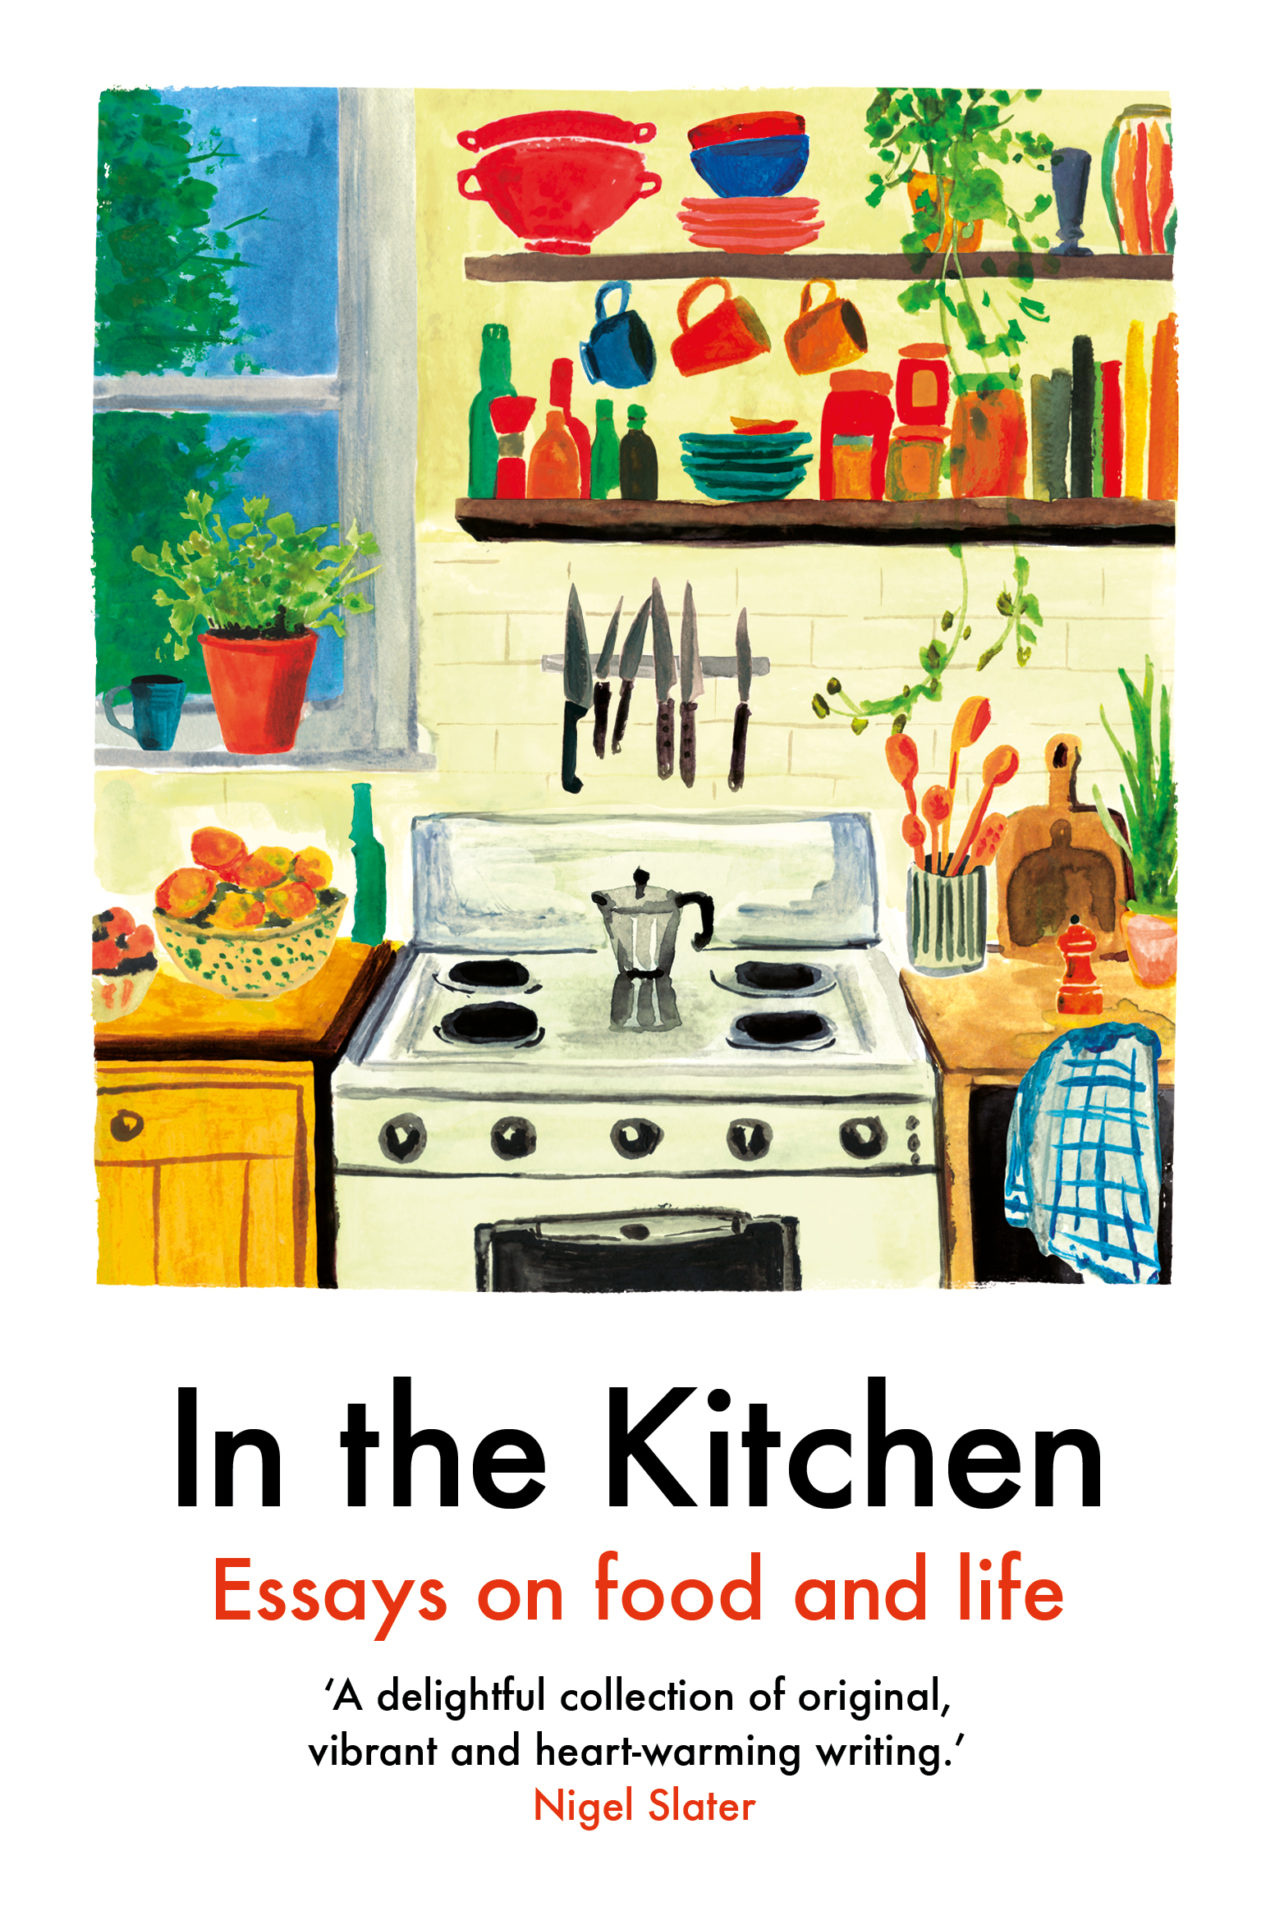 In the Kitchen: Essays on food and life by  |